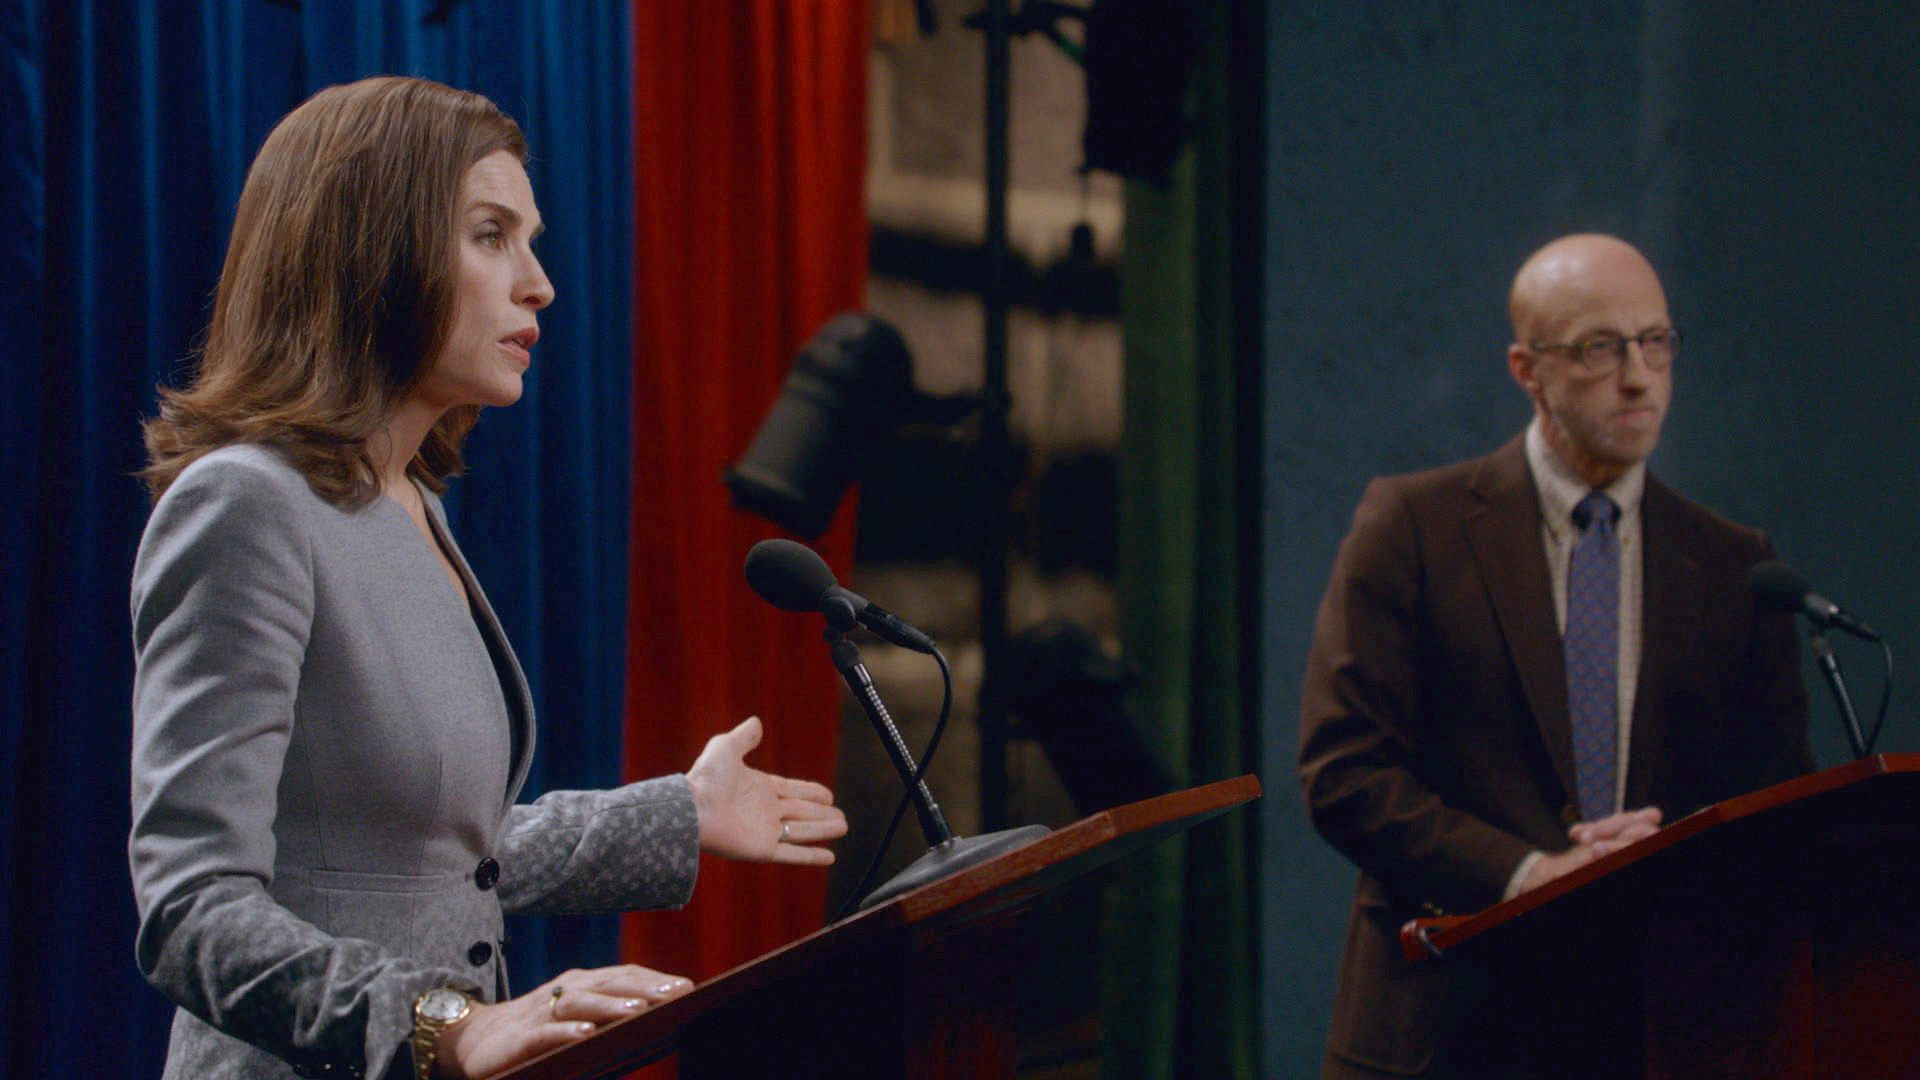 The Good Wife: l'attrice Julianna Margulies in una scena dell'episodio Hail Mary